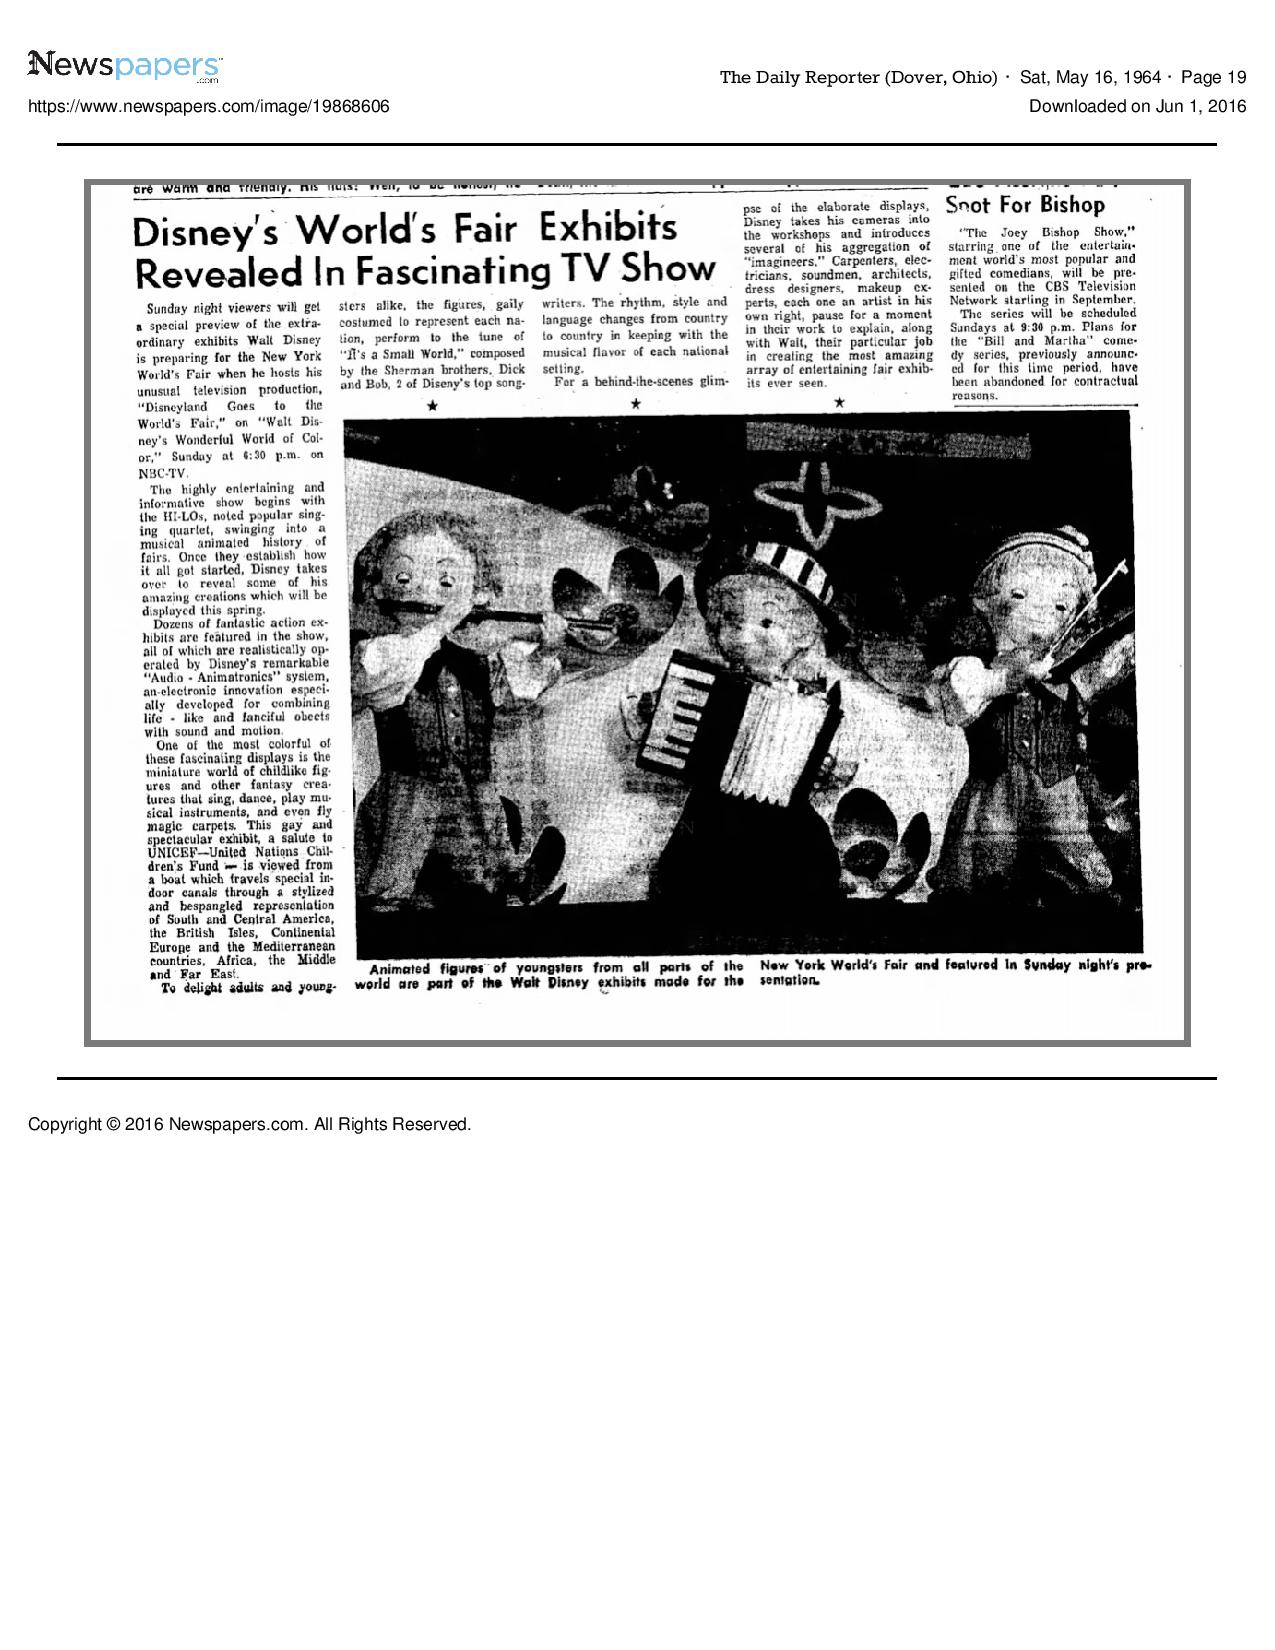 The_Daily_Reporter_Sat__May_16__1964_-page-001.jpg